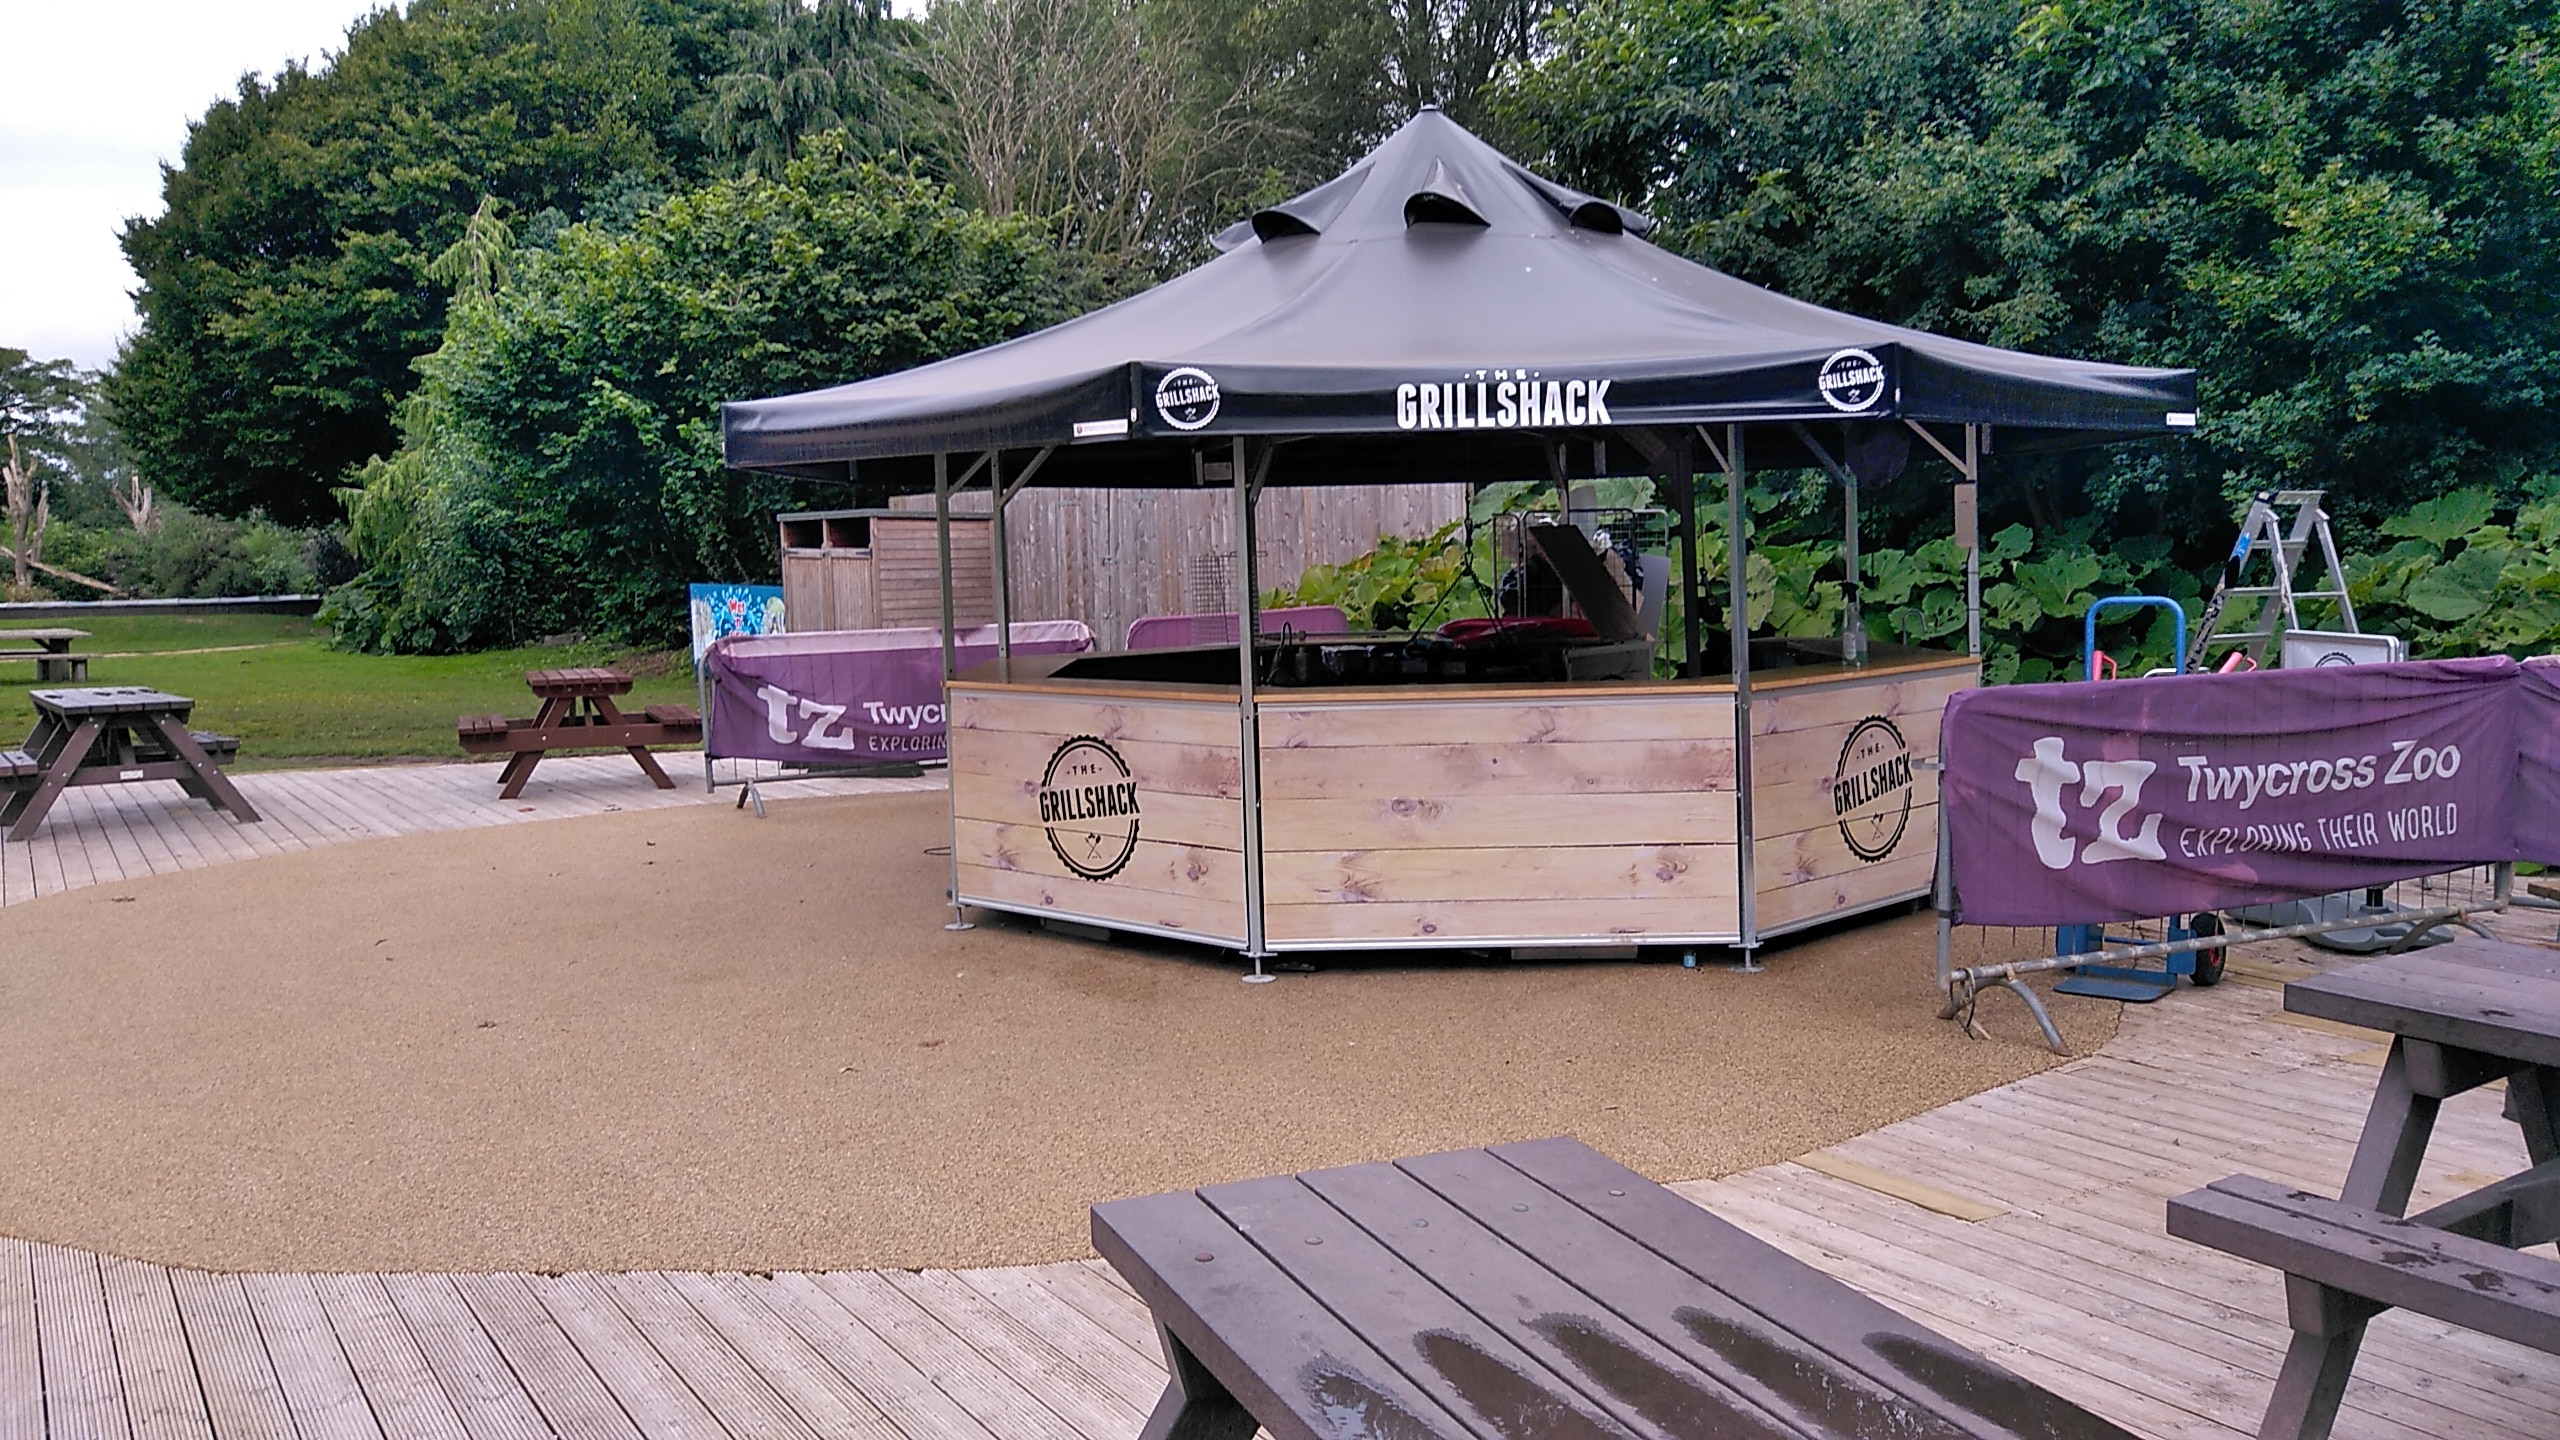 <p>Barbecues & Grills – Sanki Swinging Grills – Grills & Pavilions – Grill Shack – Twycross Zoo</p> <p>Lumiere Commercial Grill – Twycross Zoo</p> <p></p> <p>Suitable for any hospitality venues including pubs, restaurants, hotels, golf courses looking to extend their menu offering and maximise the use of their outdoor space whilst relieving the kitchen staff</p> <p></p> <p>Ideal combined with Octagonal Pavilion or Folding Tent both available with special roof openings</p>